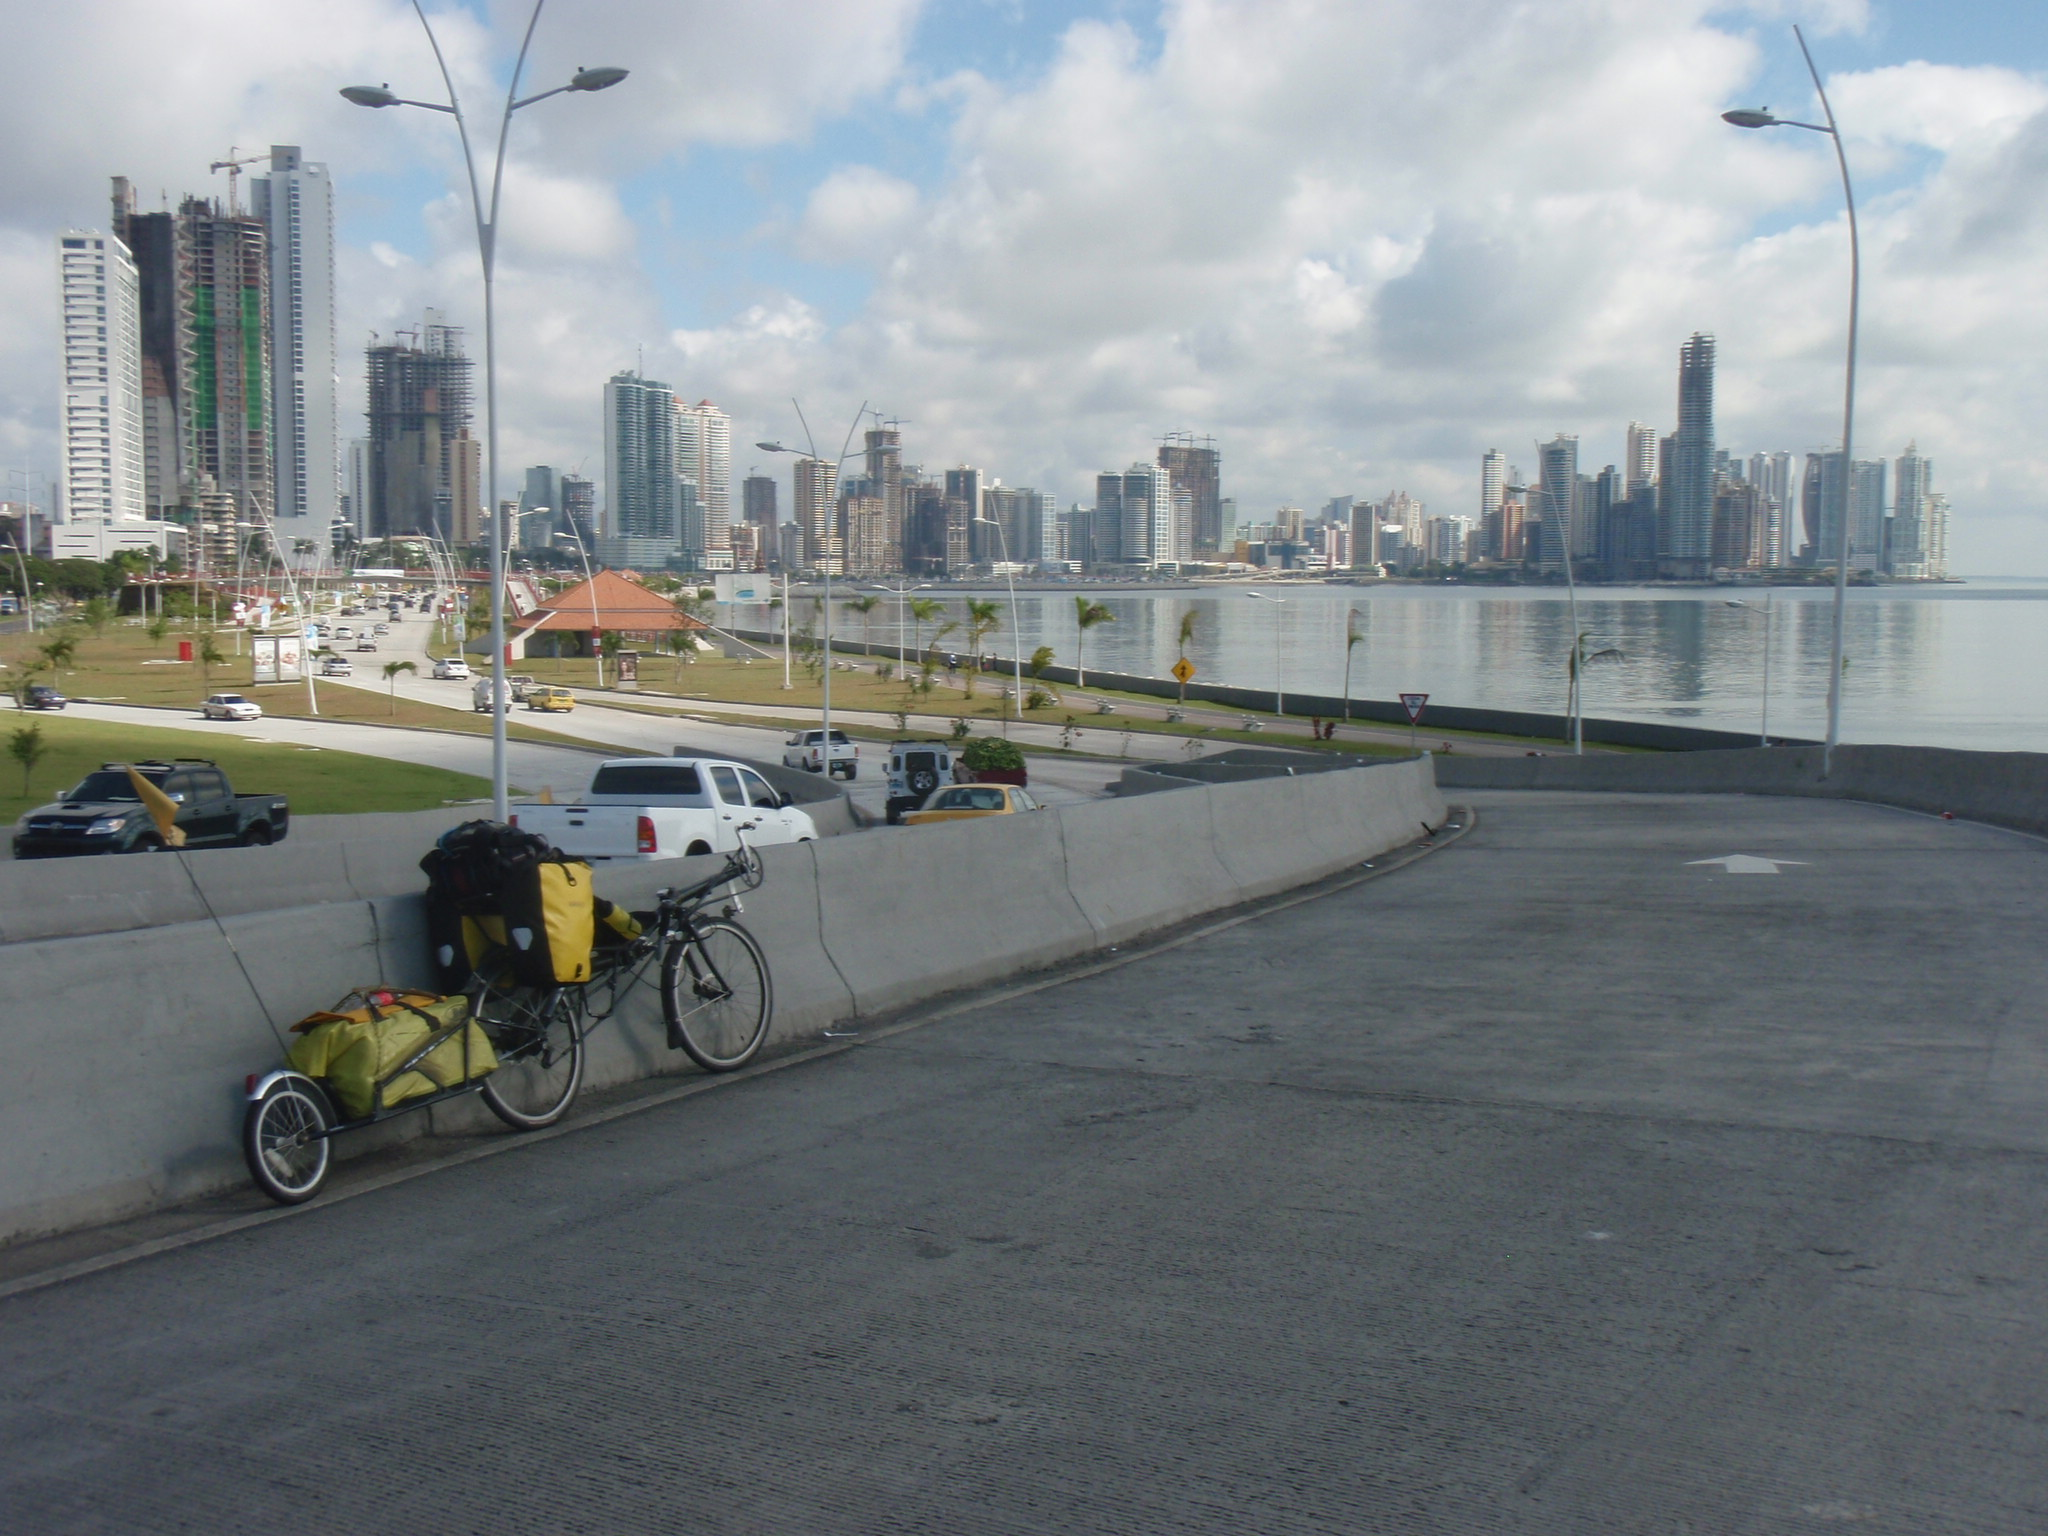 Arriving in Panama City with skyline along Avenida Balboa